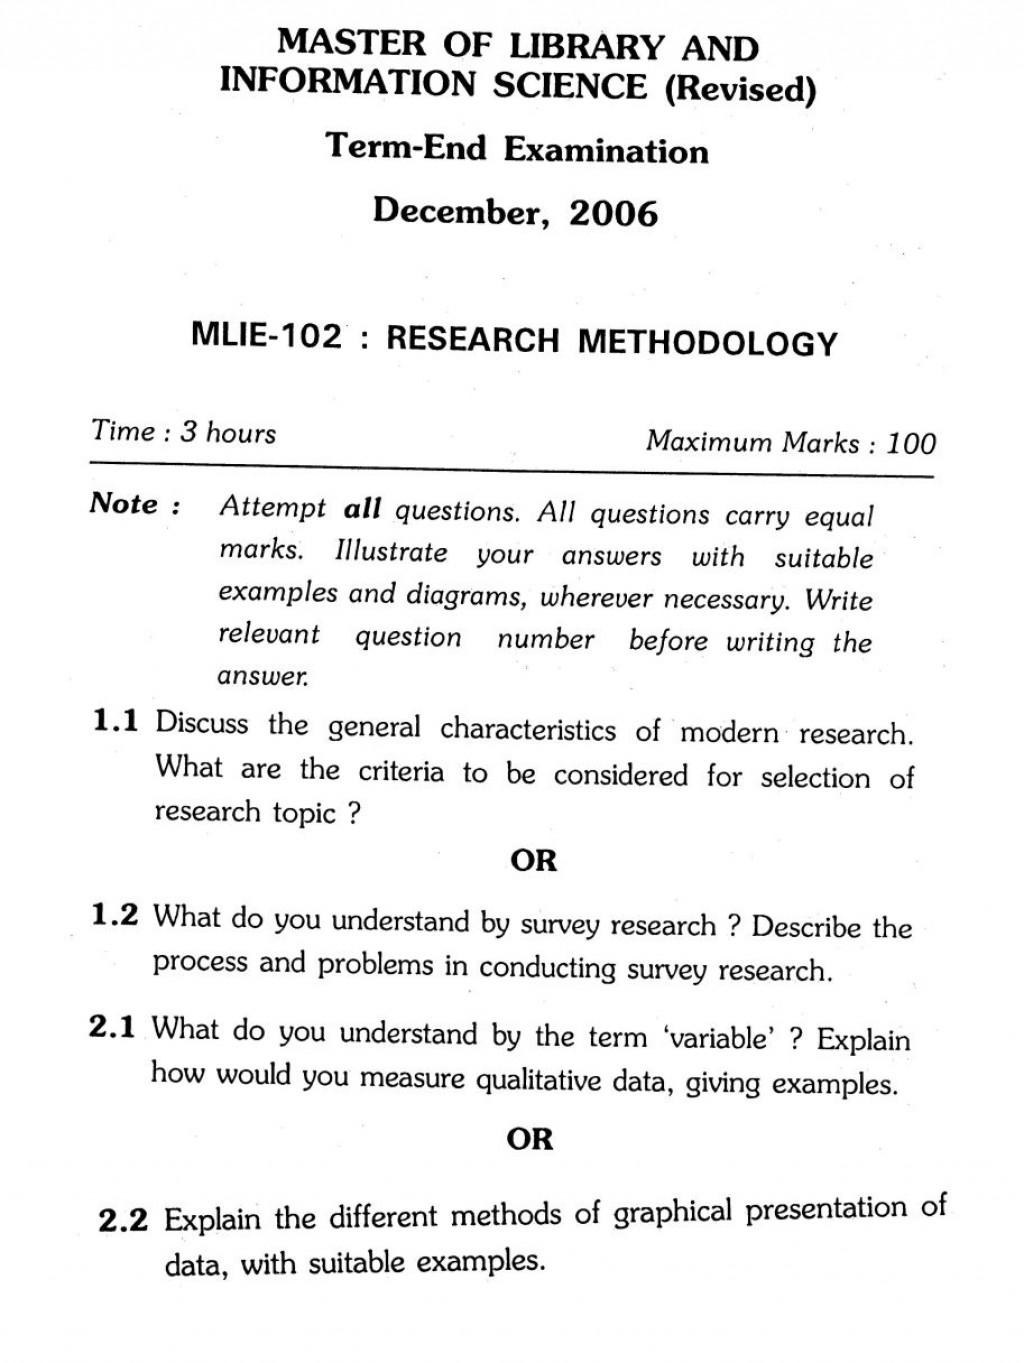 008 Ignou Master Of Library And Information Science Research Methodology Previous Years Questions Example For Unusual Paper Sample Writing Section In Qualitative Large